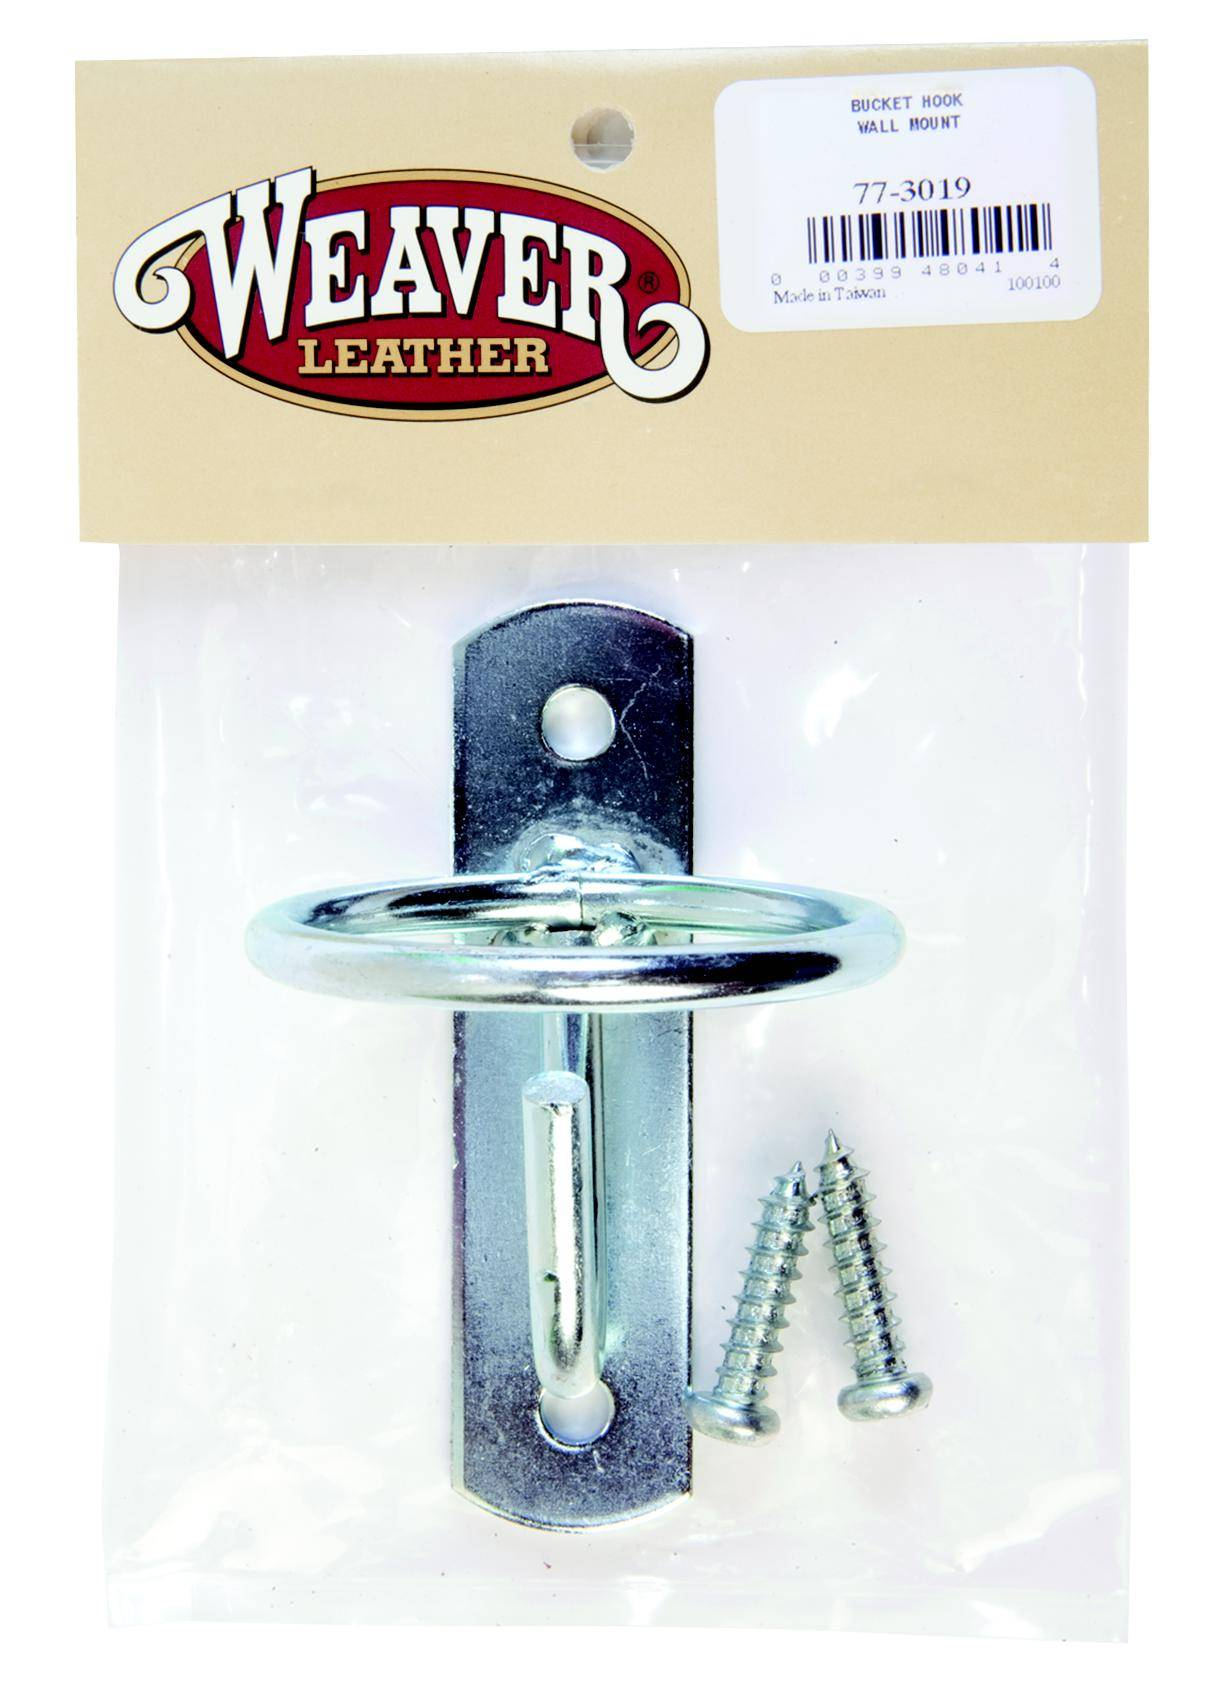 Weaver Leather Bagged Bucket Wall Mount